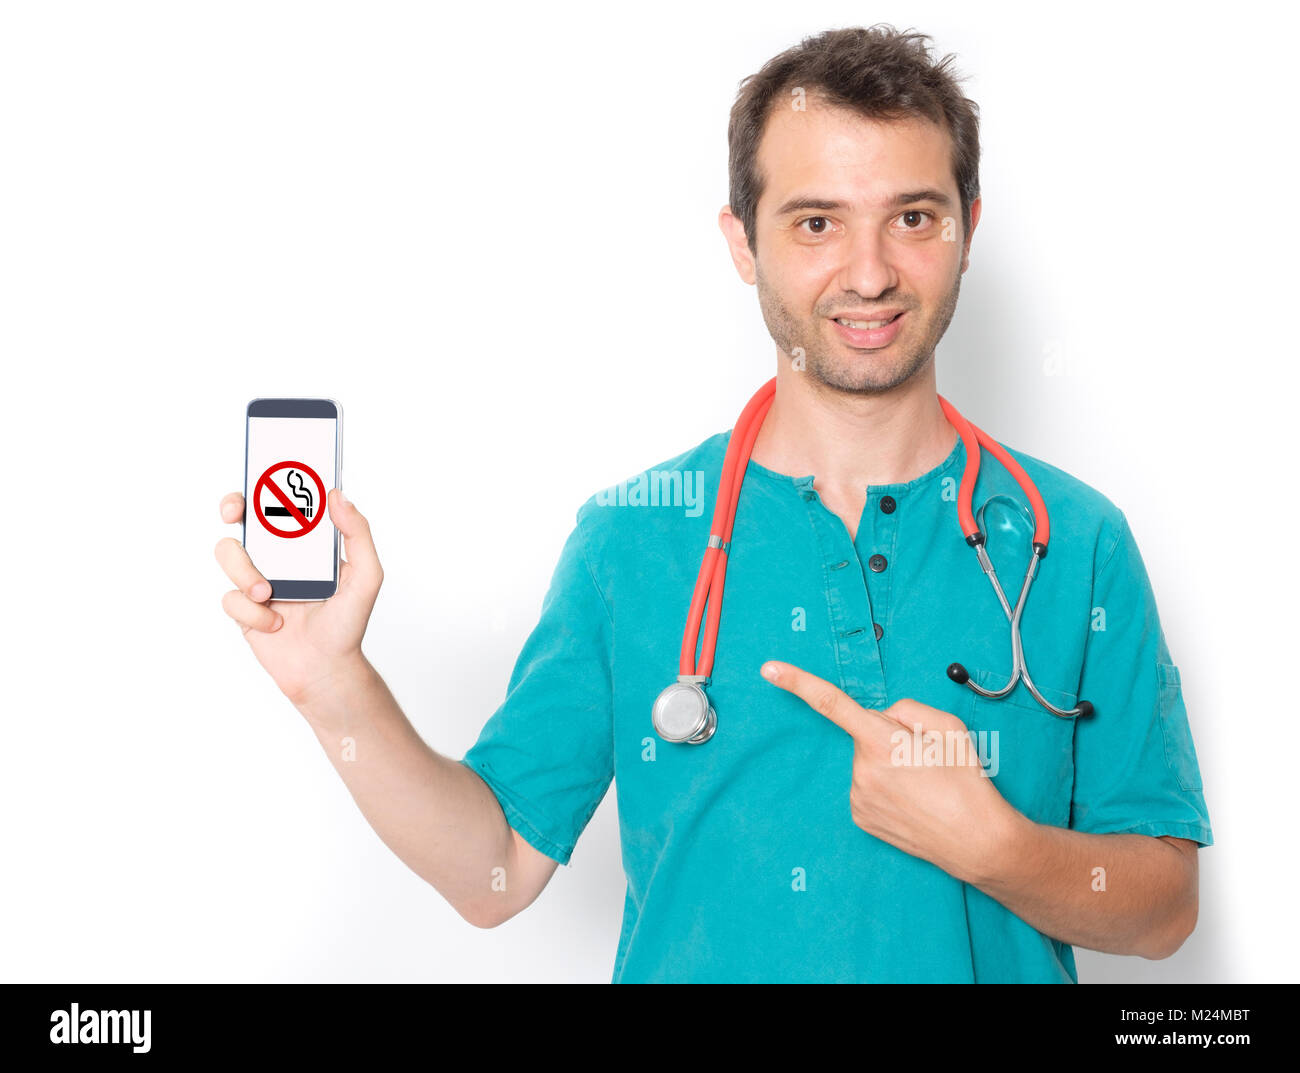 Doctor and stop smoking symbol on mobile phone - Stock Image